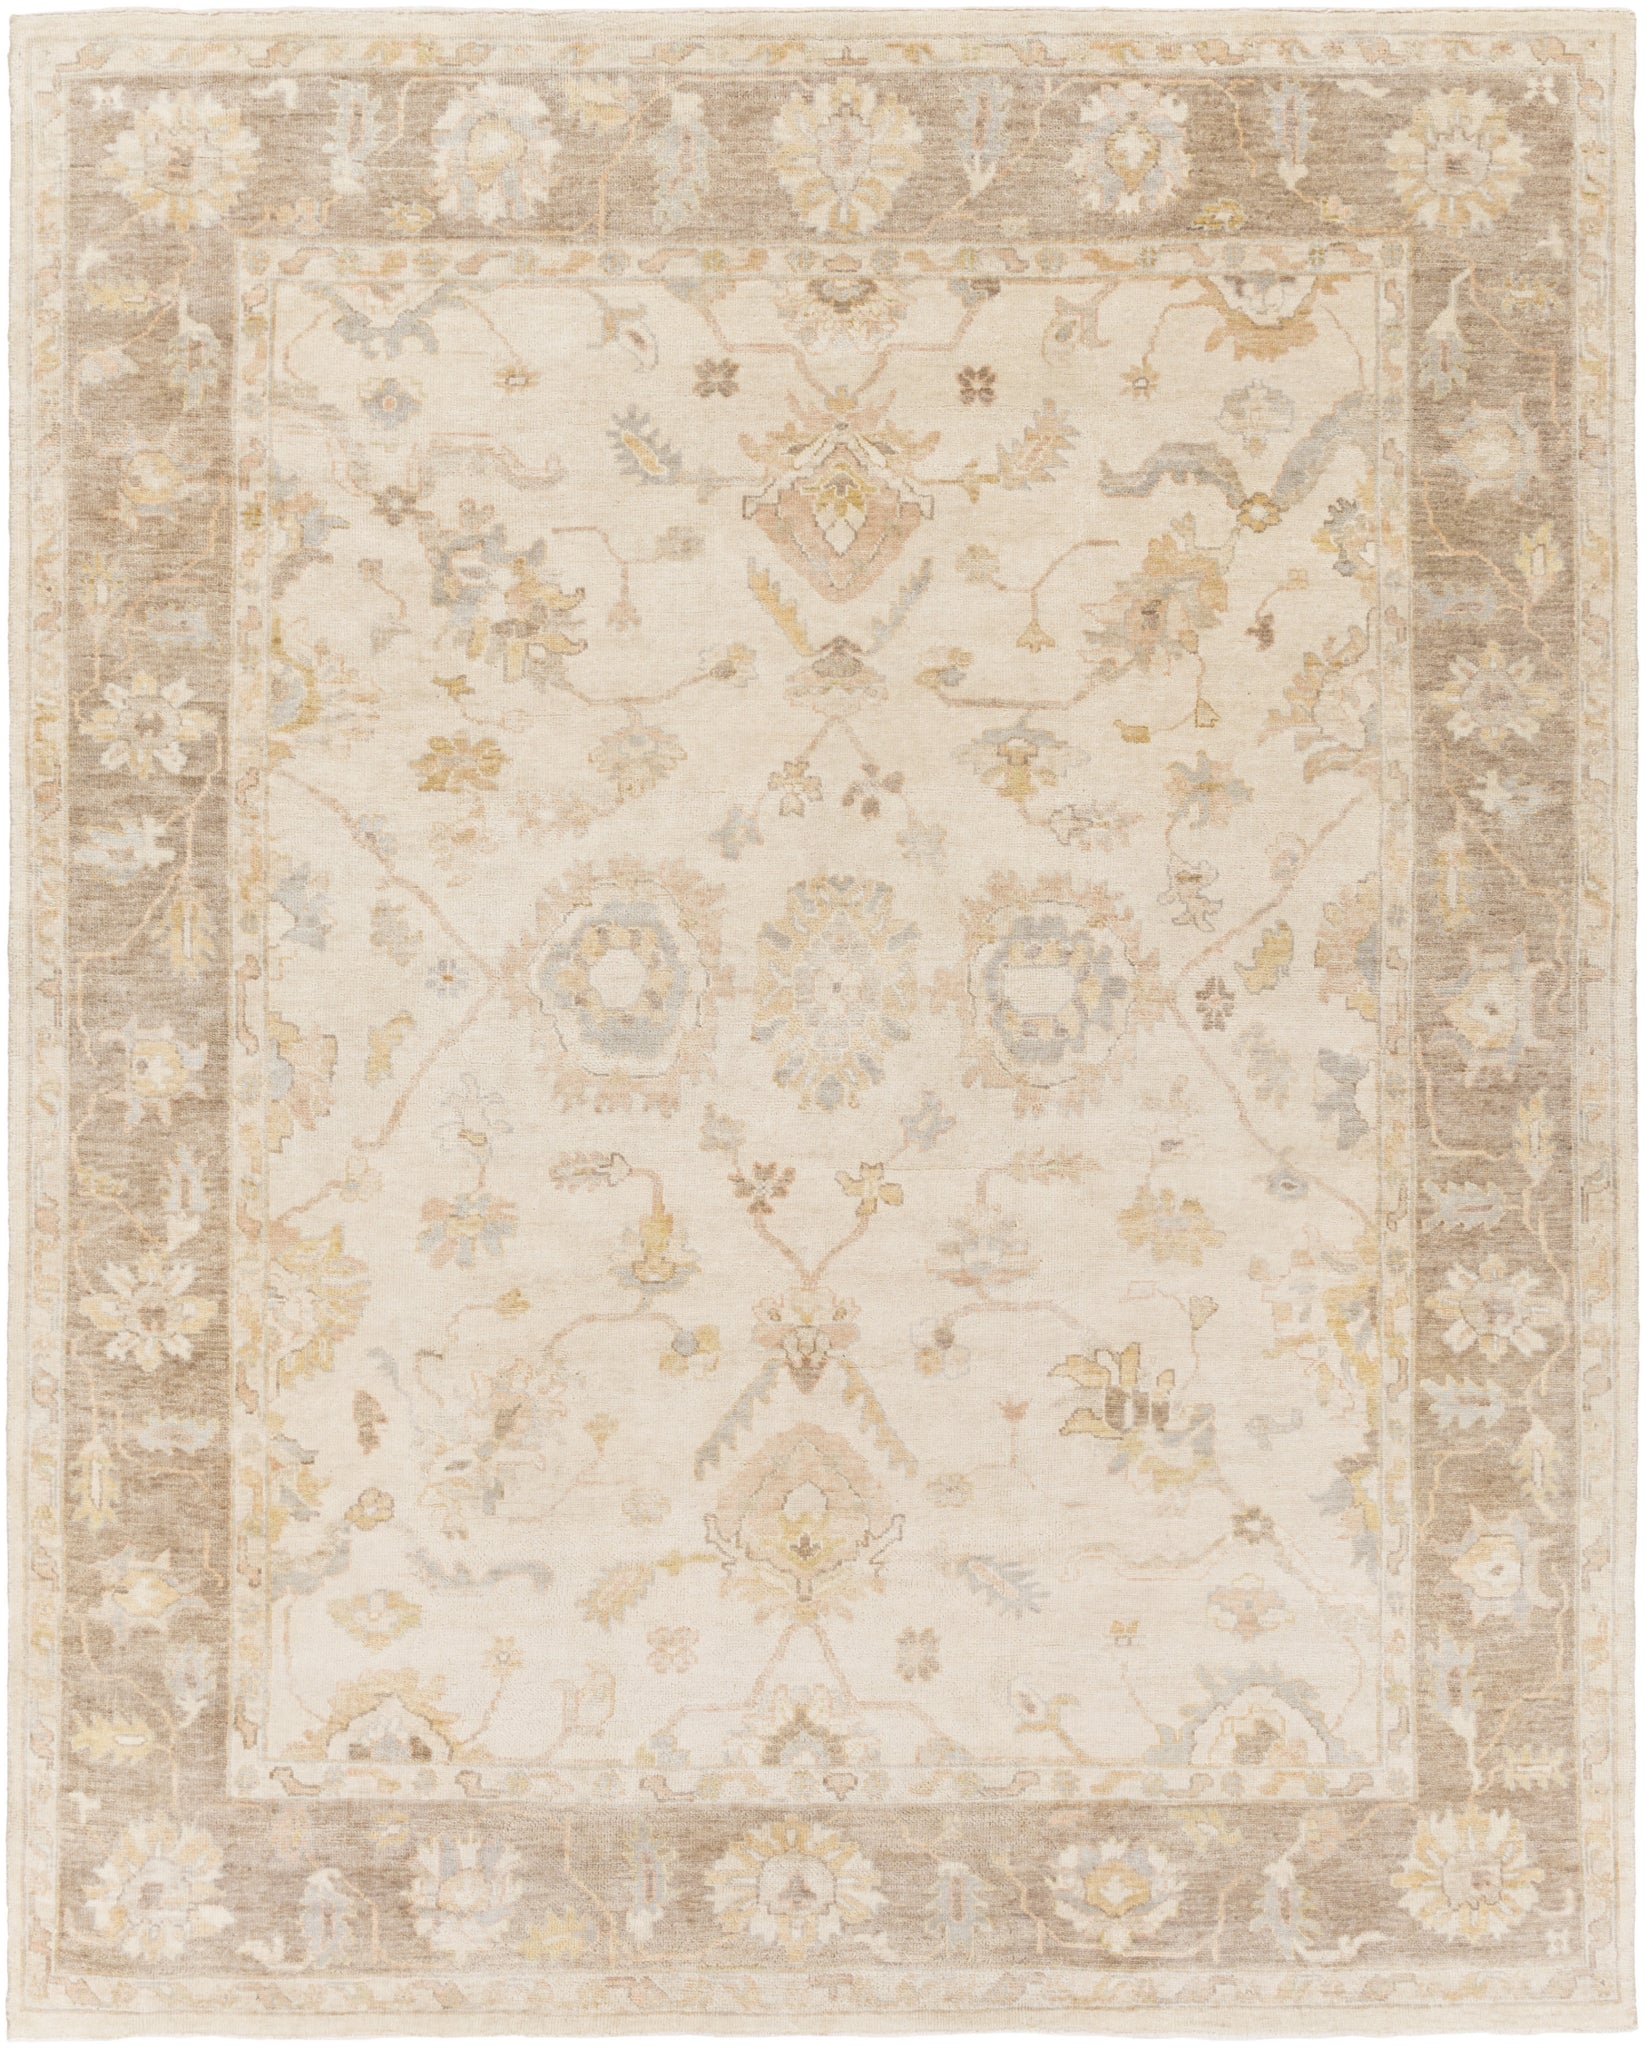 Surya Normandy NOY-8004 Area Rug main image